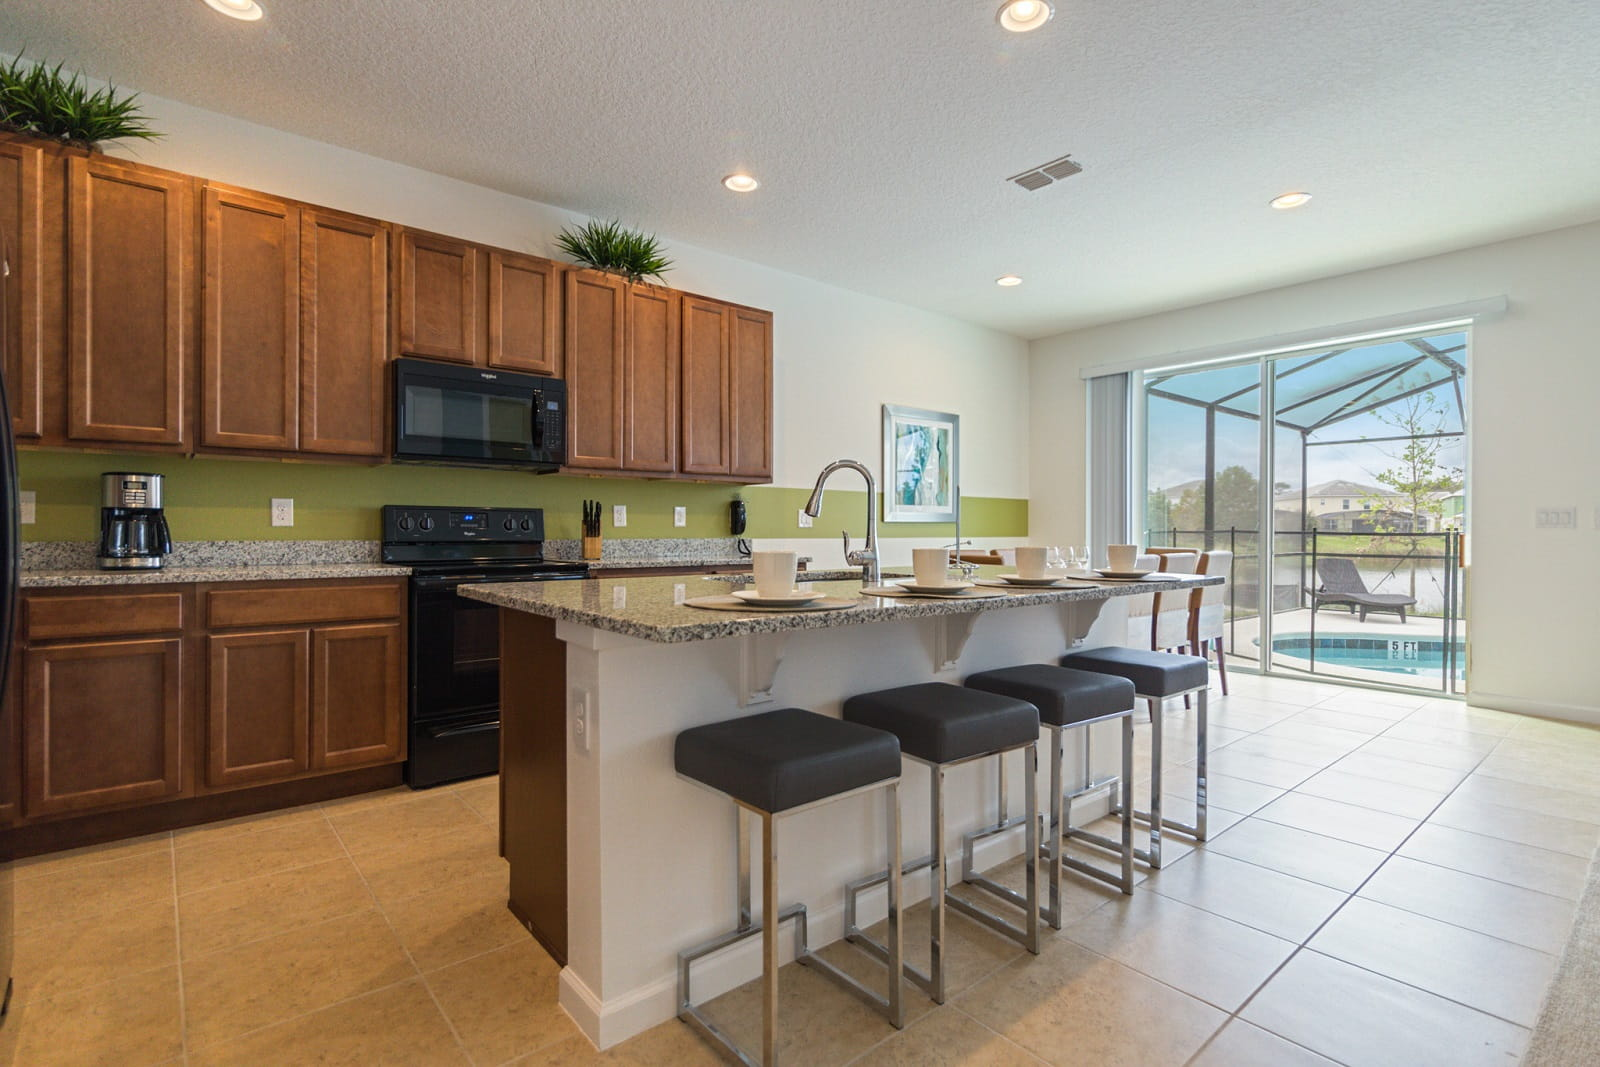 Real Estate Photography in Kissimmee - FL - USA - Kitchen View